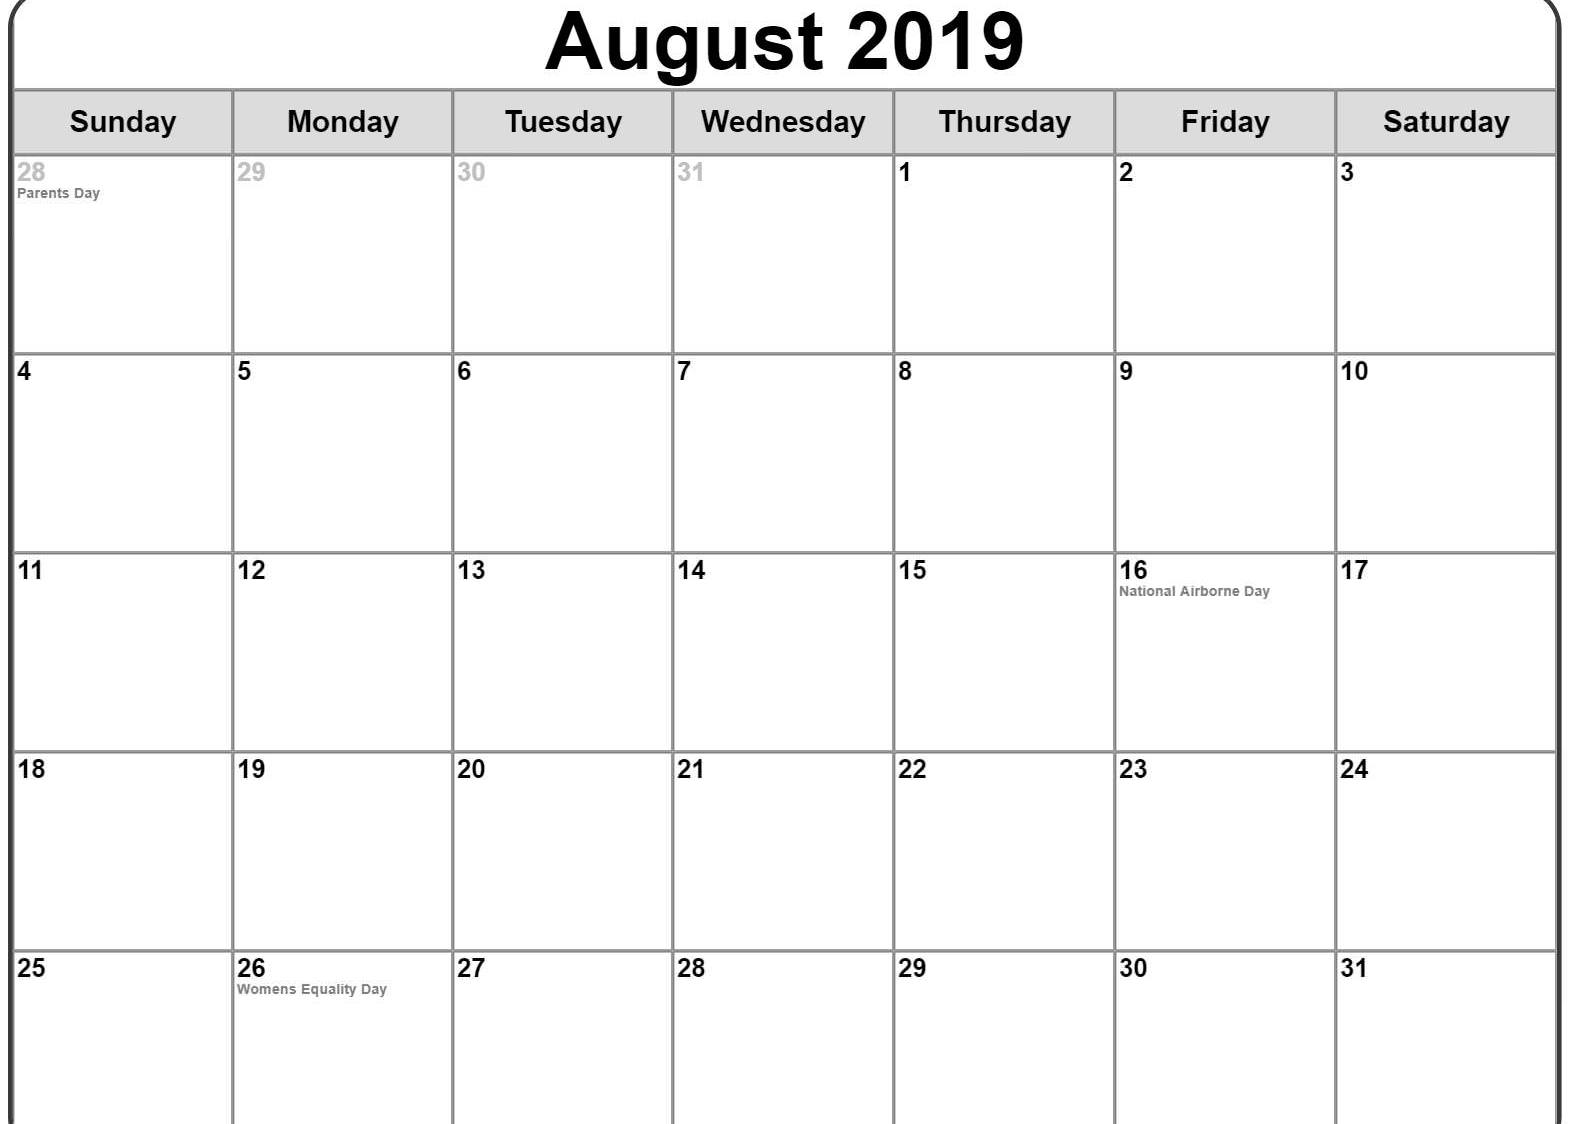 Holidays for USA of August 2019